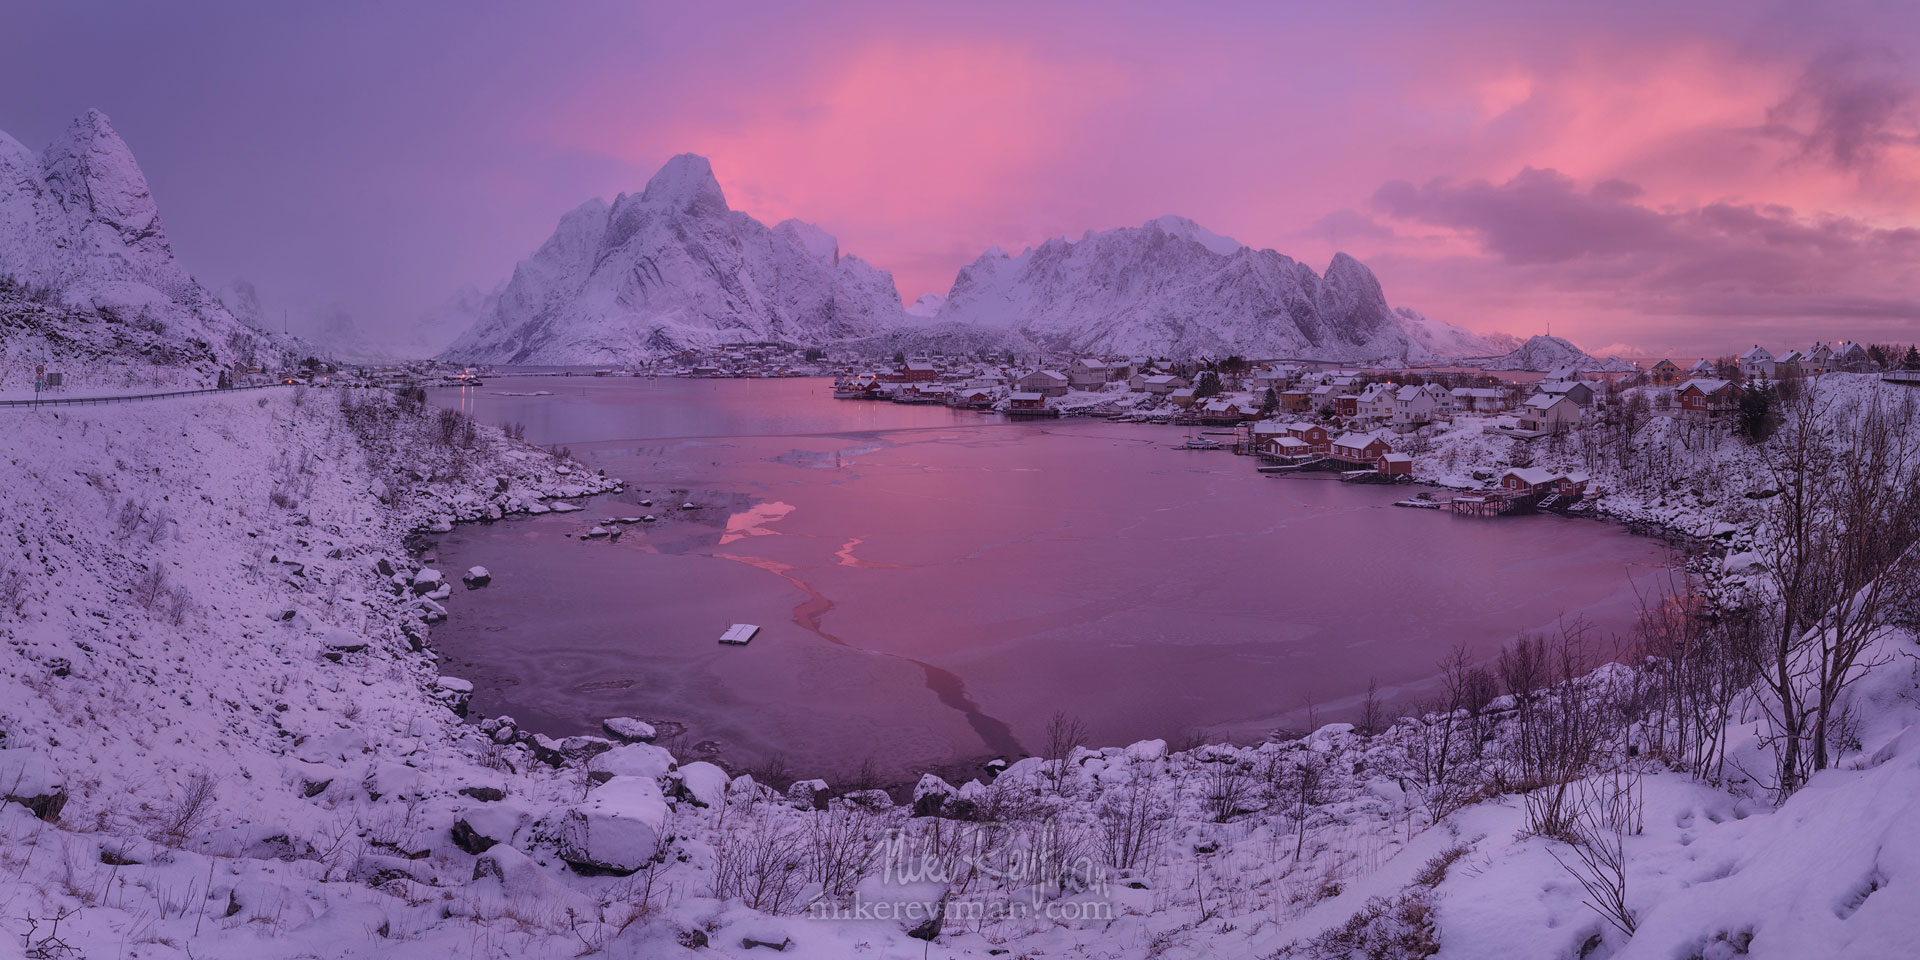 Arctic Morning. Panoramic view of Olstinden mountain peak and fishing village of Reine at sunrise. Moskenes, Lofoten archipelago, Norway. LF-MRD1E0840-46_Pano-2x1 - Lofoten Archipelago in Winter, Arctic Norway - Mike Reyfman Photography